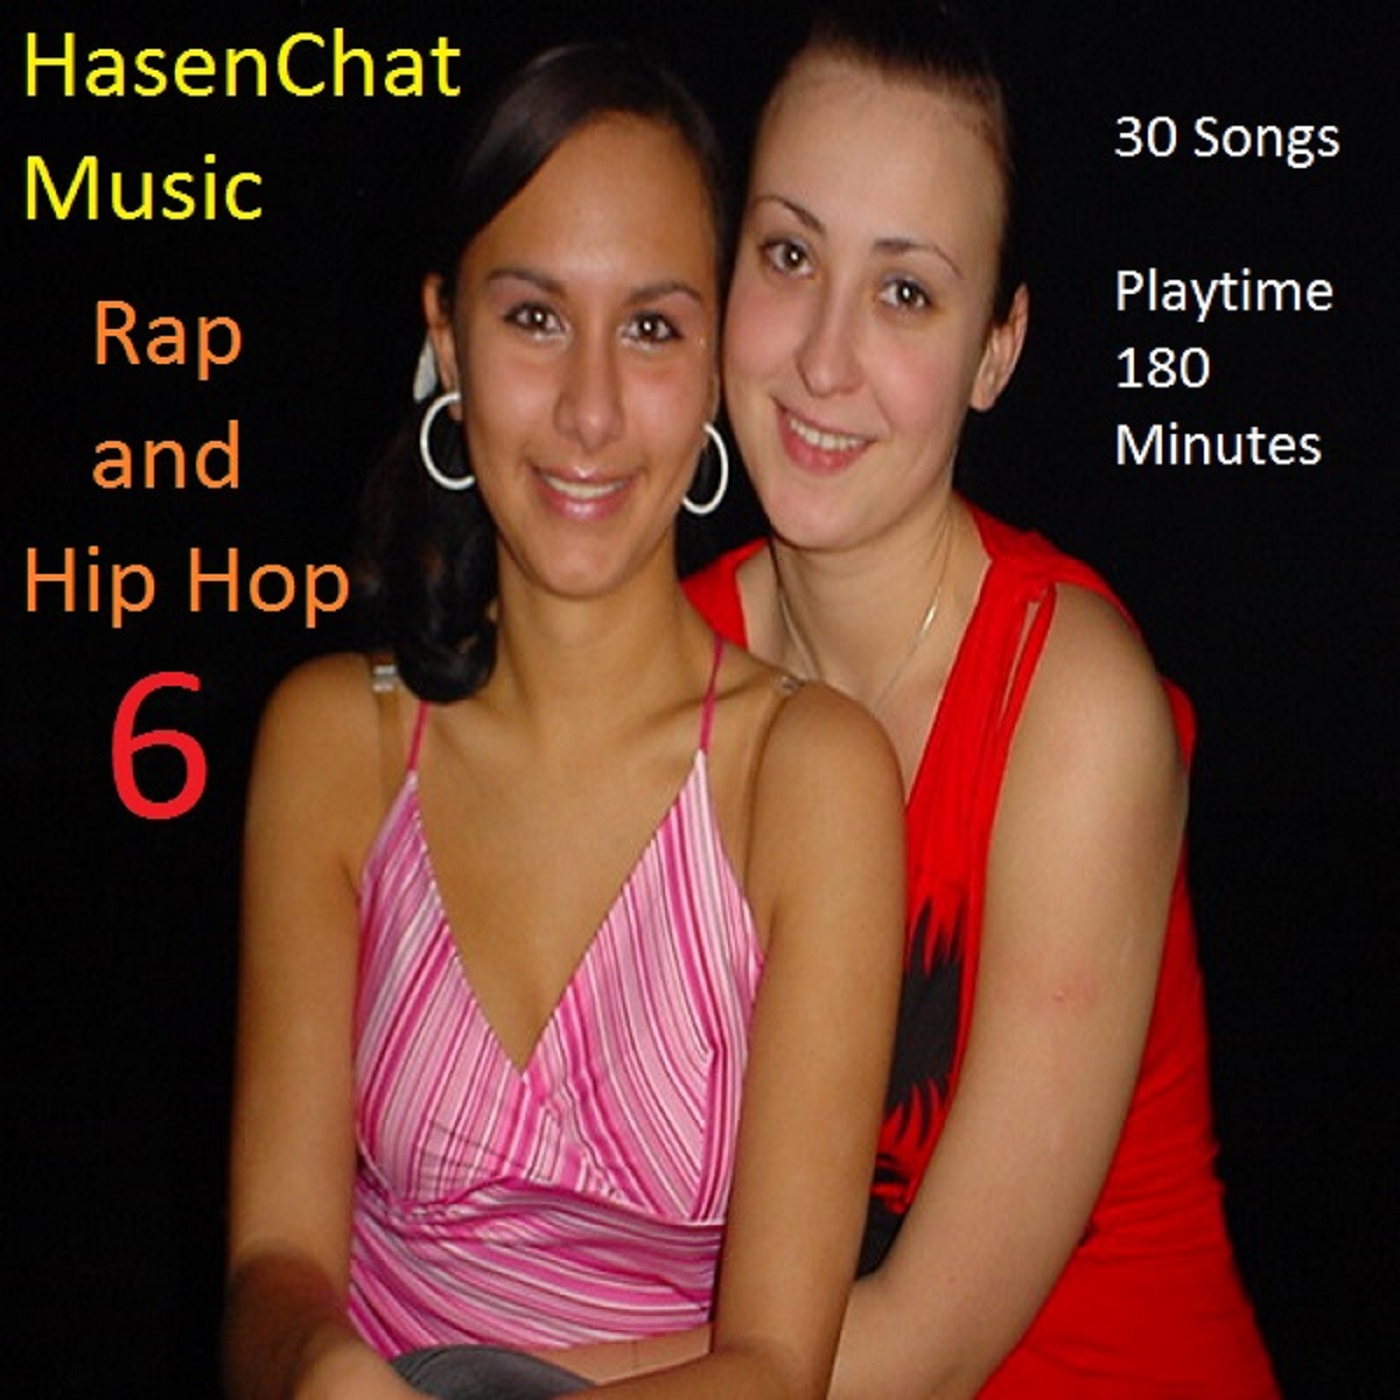 HasenChat Music - Rap and Hip Hop - Episode 6